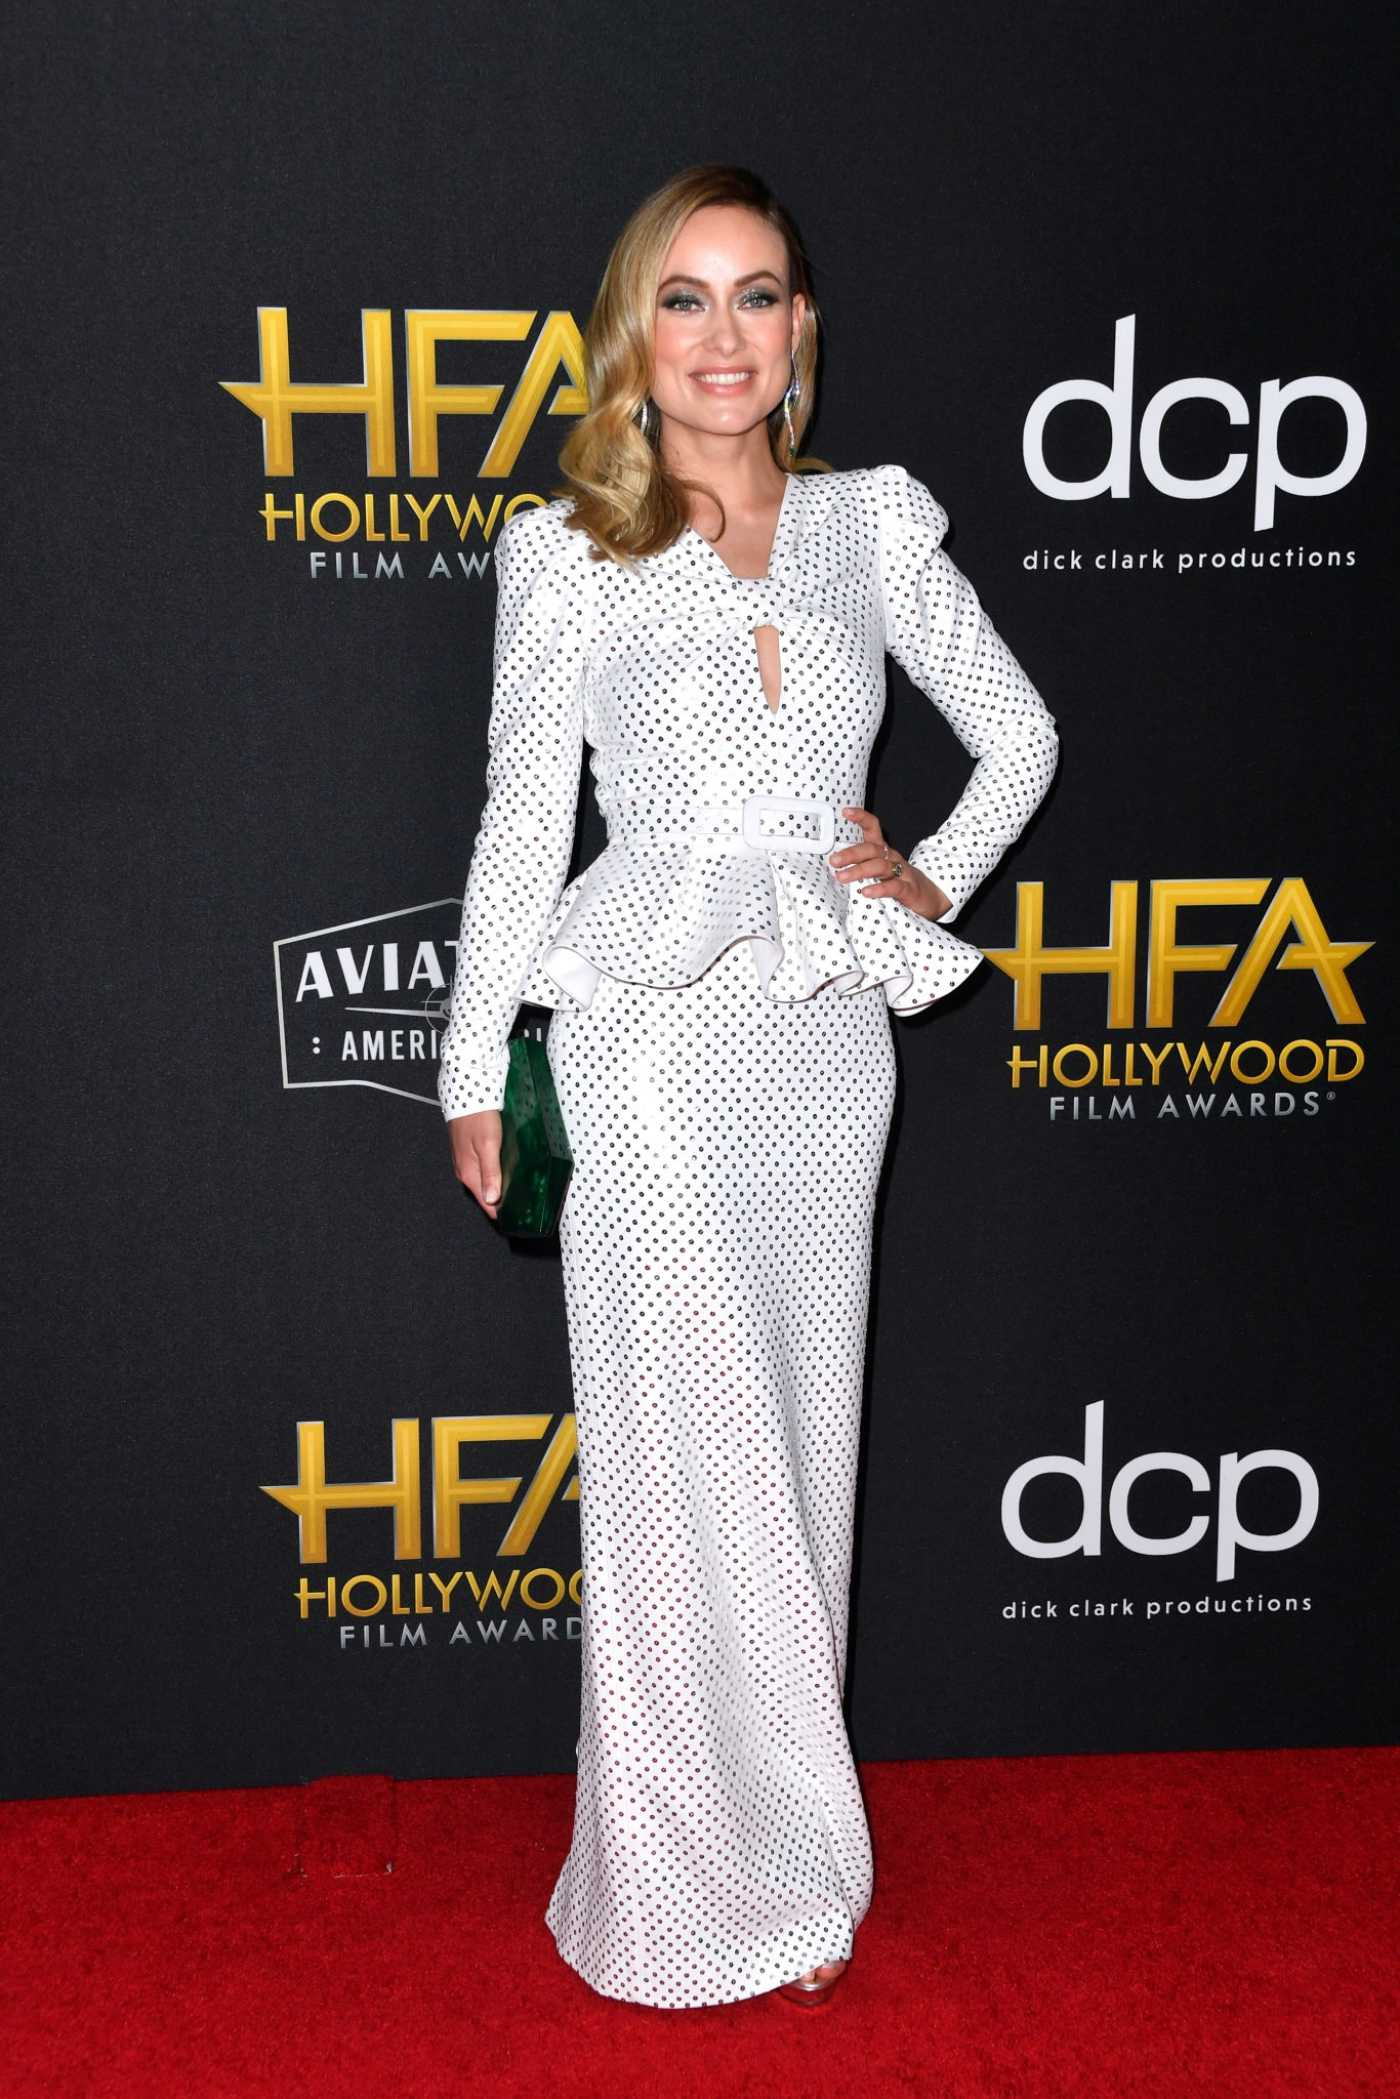 Olivia Wilde Attends the 23rd Annual Hollywood Film Awards at The Beverly Hilton Hotel in Beverly Hills 11/03/2019